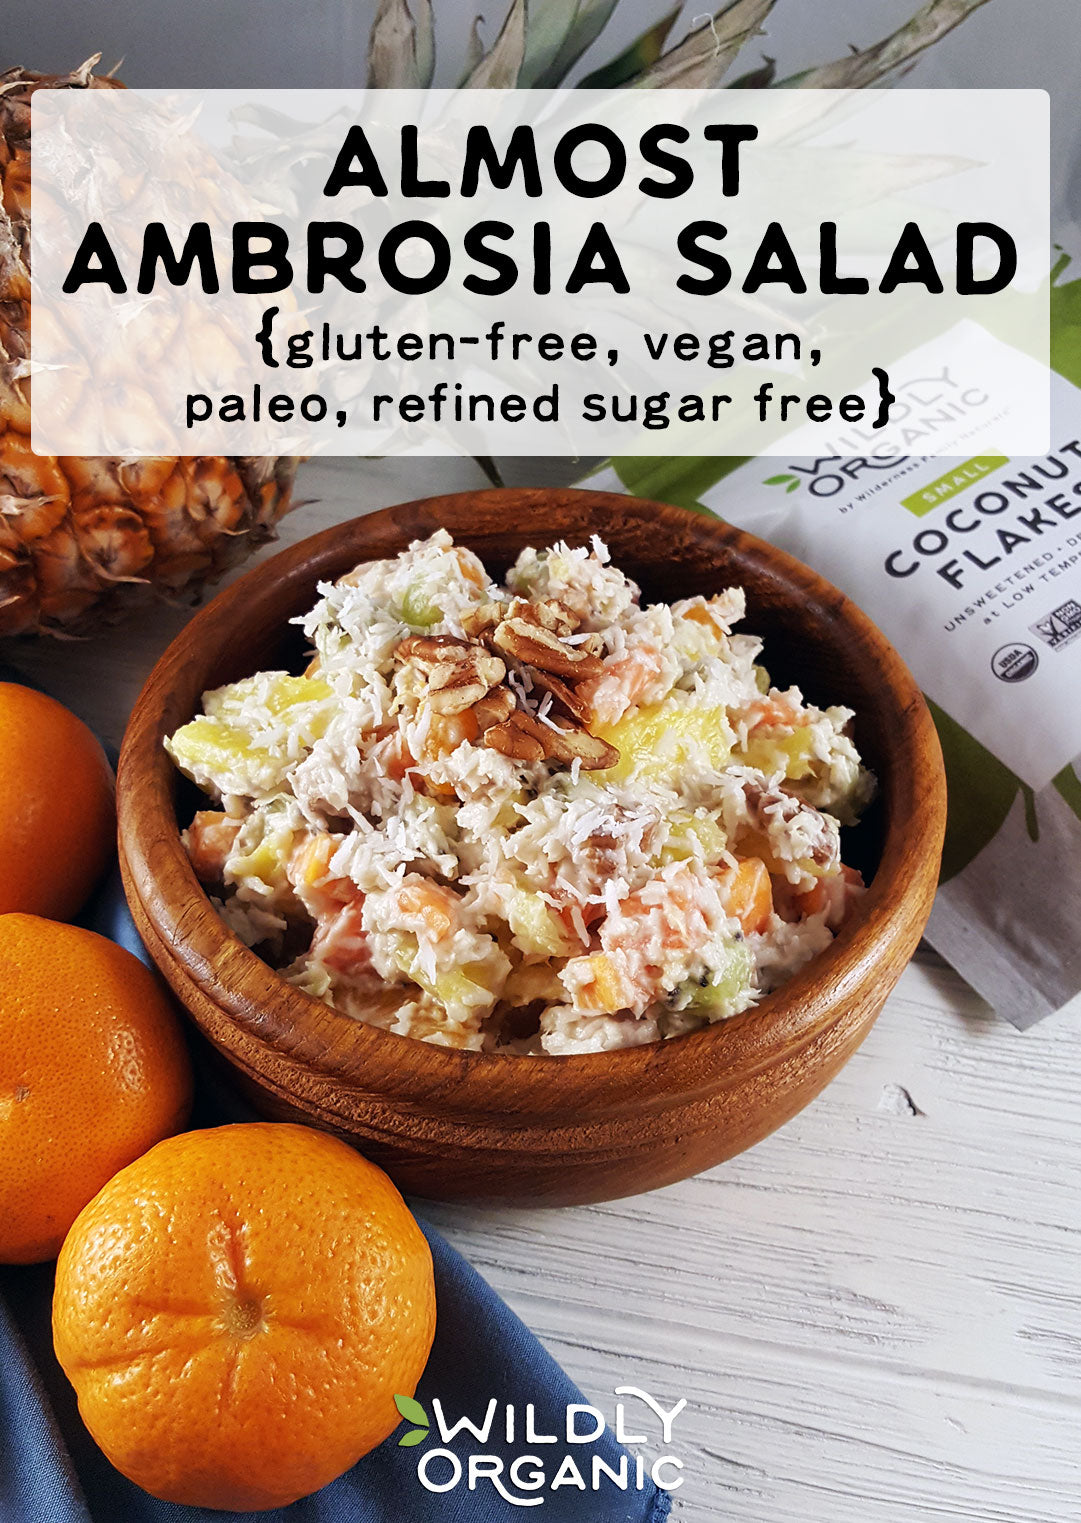 A photo of ambrosia salad with pecans in a bowl.